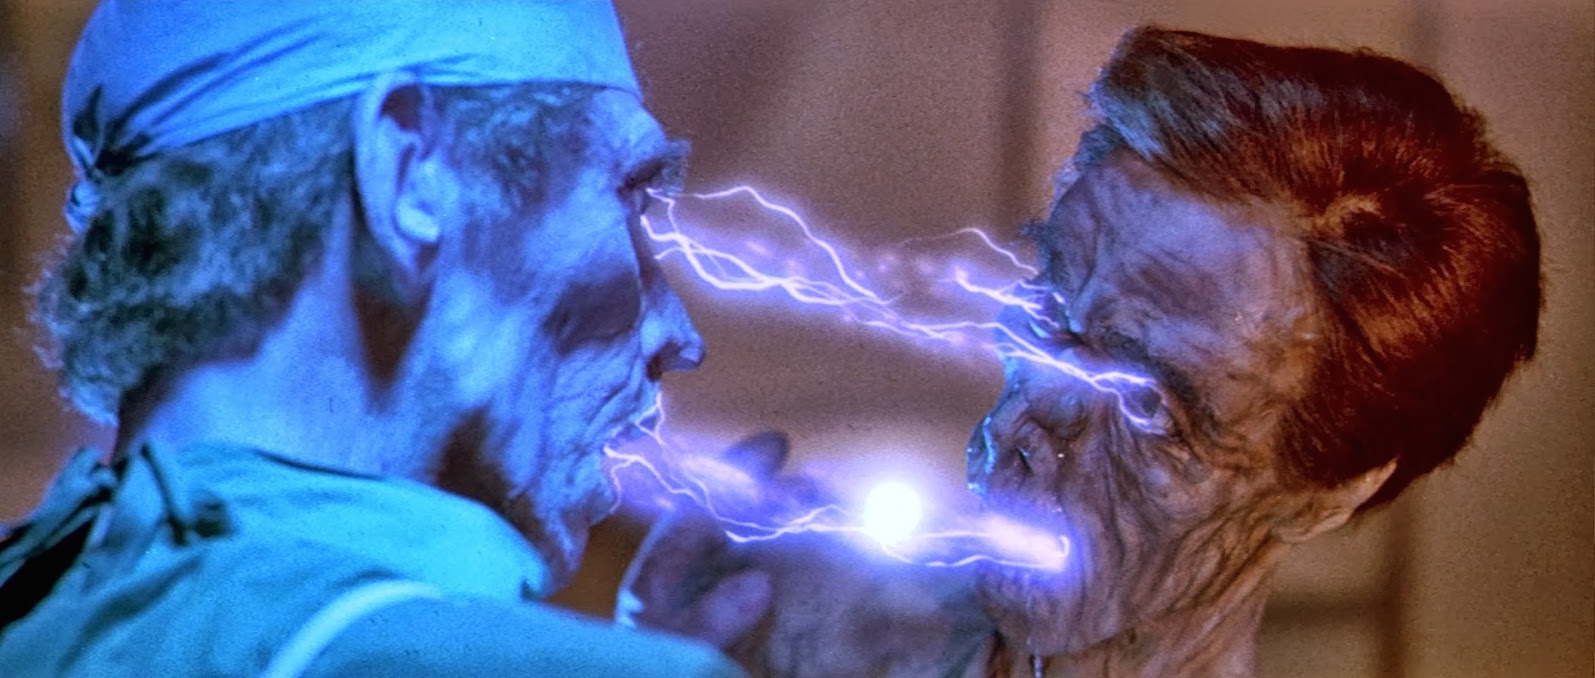 One of the space vampires sucks out a victim's lifeforce in Lifeforce (1985)